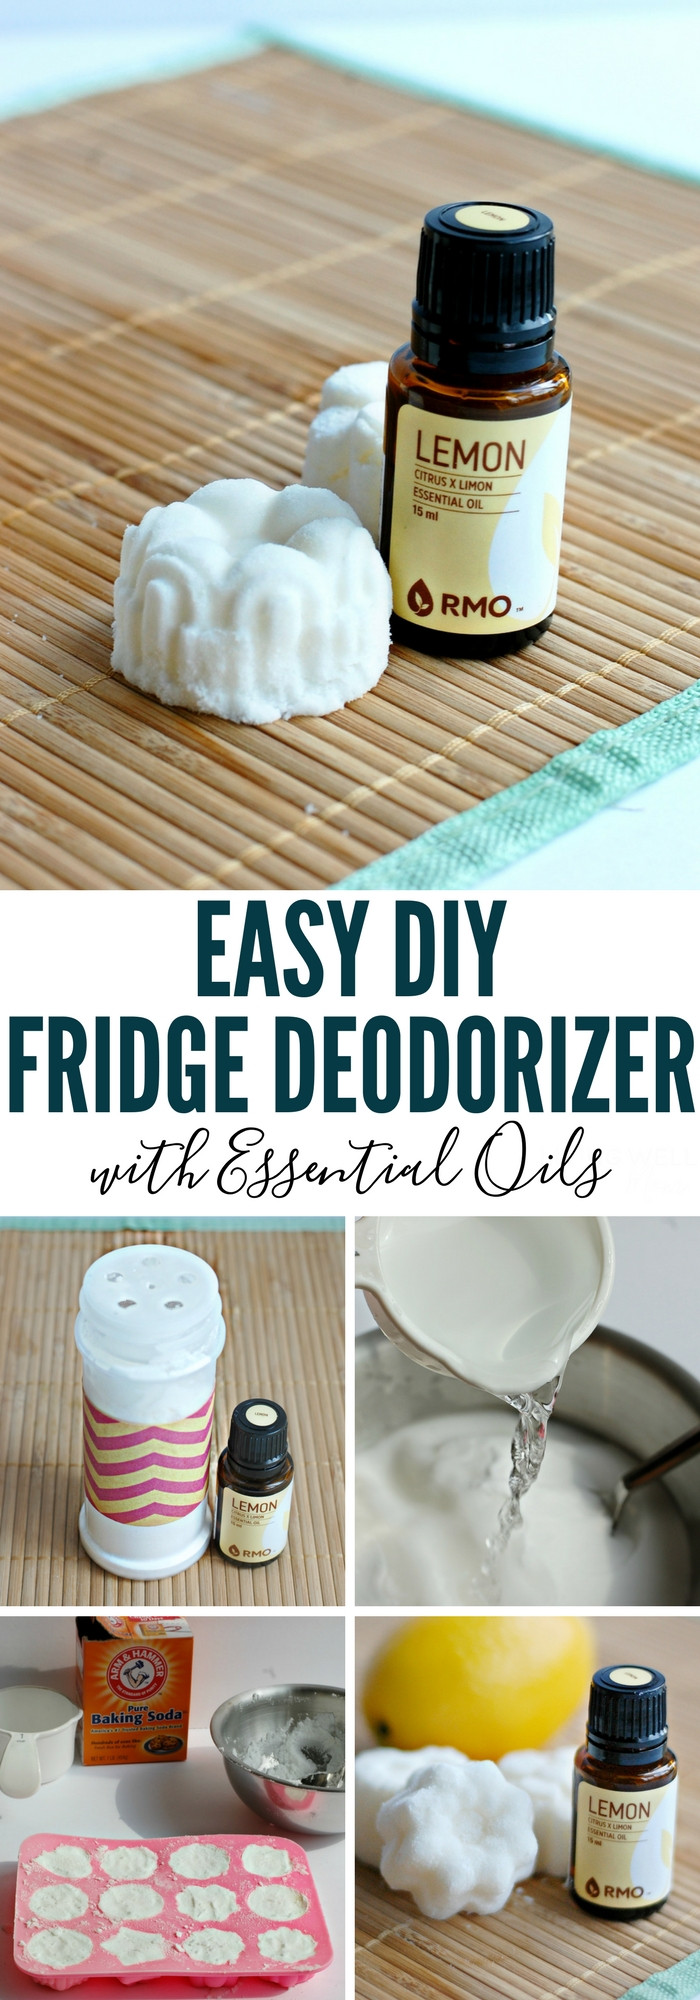 Best ideas about DIY Essential Oils . Save or Pin Easy DIY Fridge Deodorizer with Essential Oils Now.